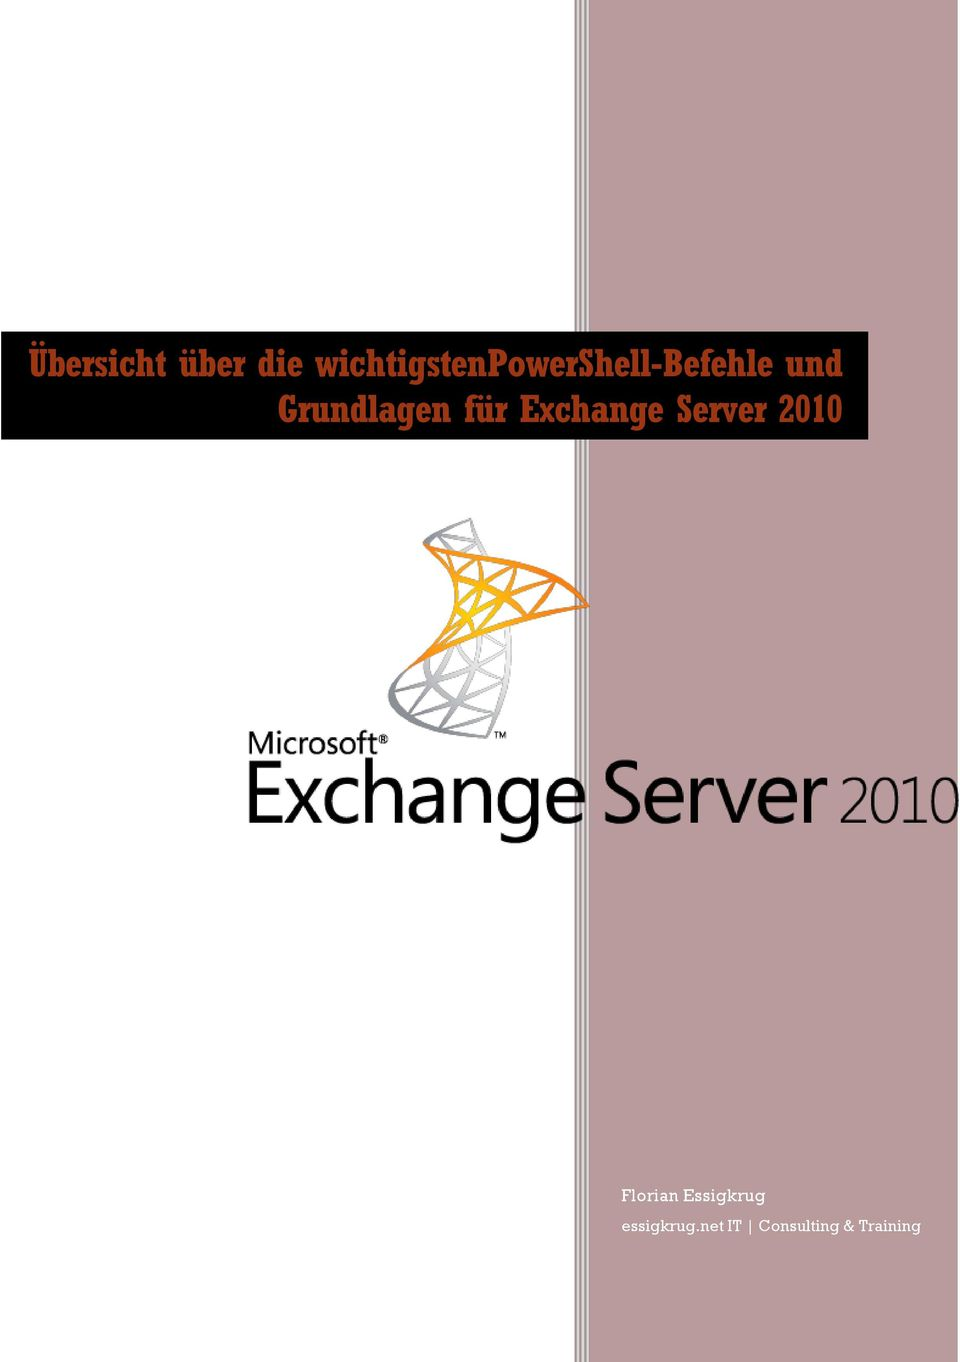 Grundlagen für Exchange Server 2010